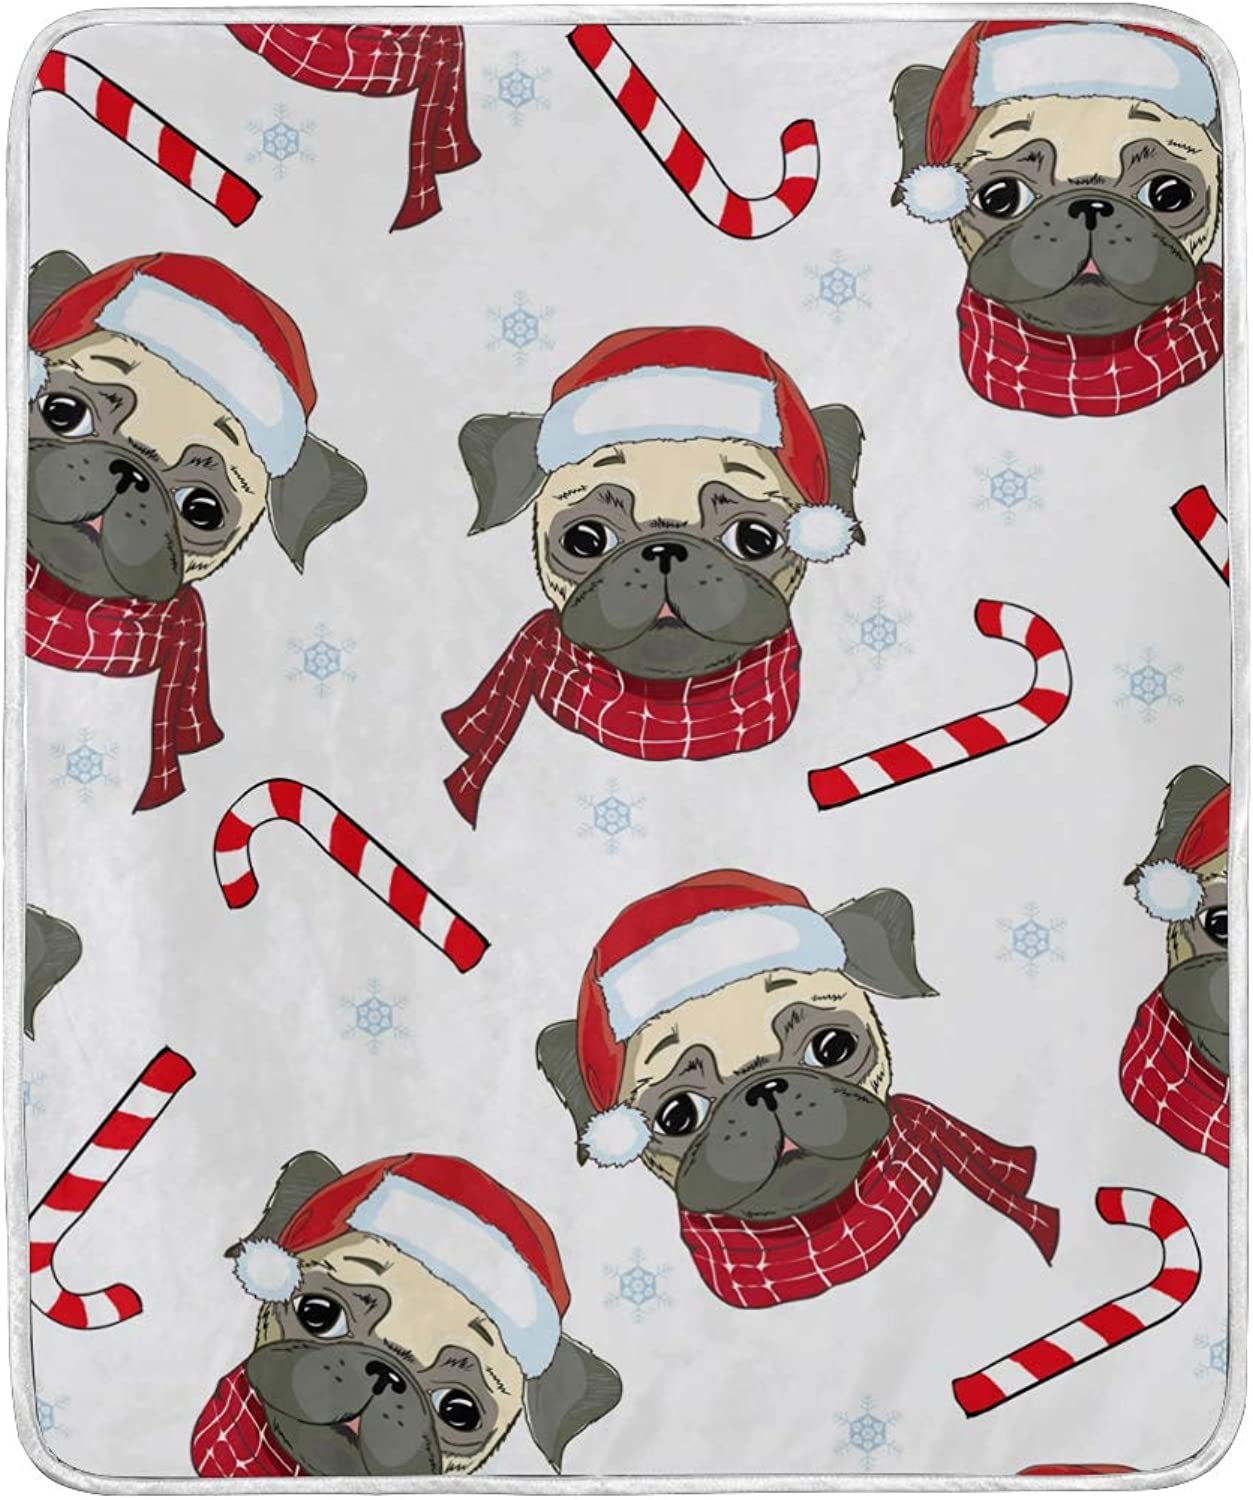 Christmas Dog Pug with Candy Cane Throw Blanket for Couch Bed Living Room Chair 50x60 inch Adult Kid Women Soft Velvet Blanket Warm Fuzzy Decorative